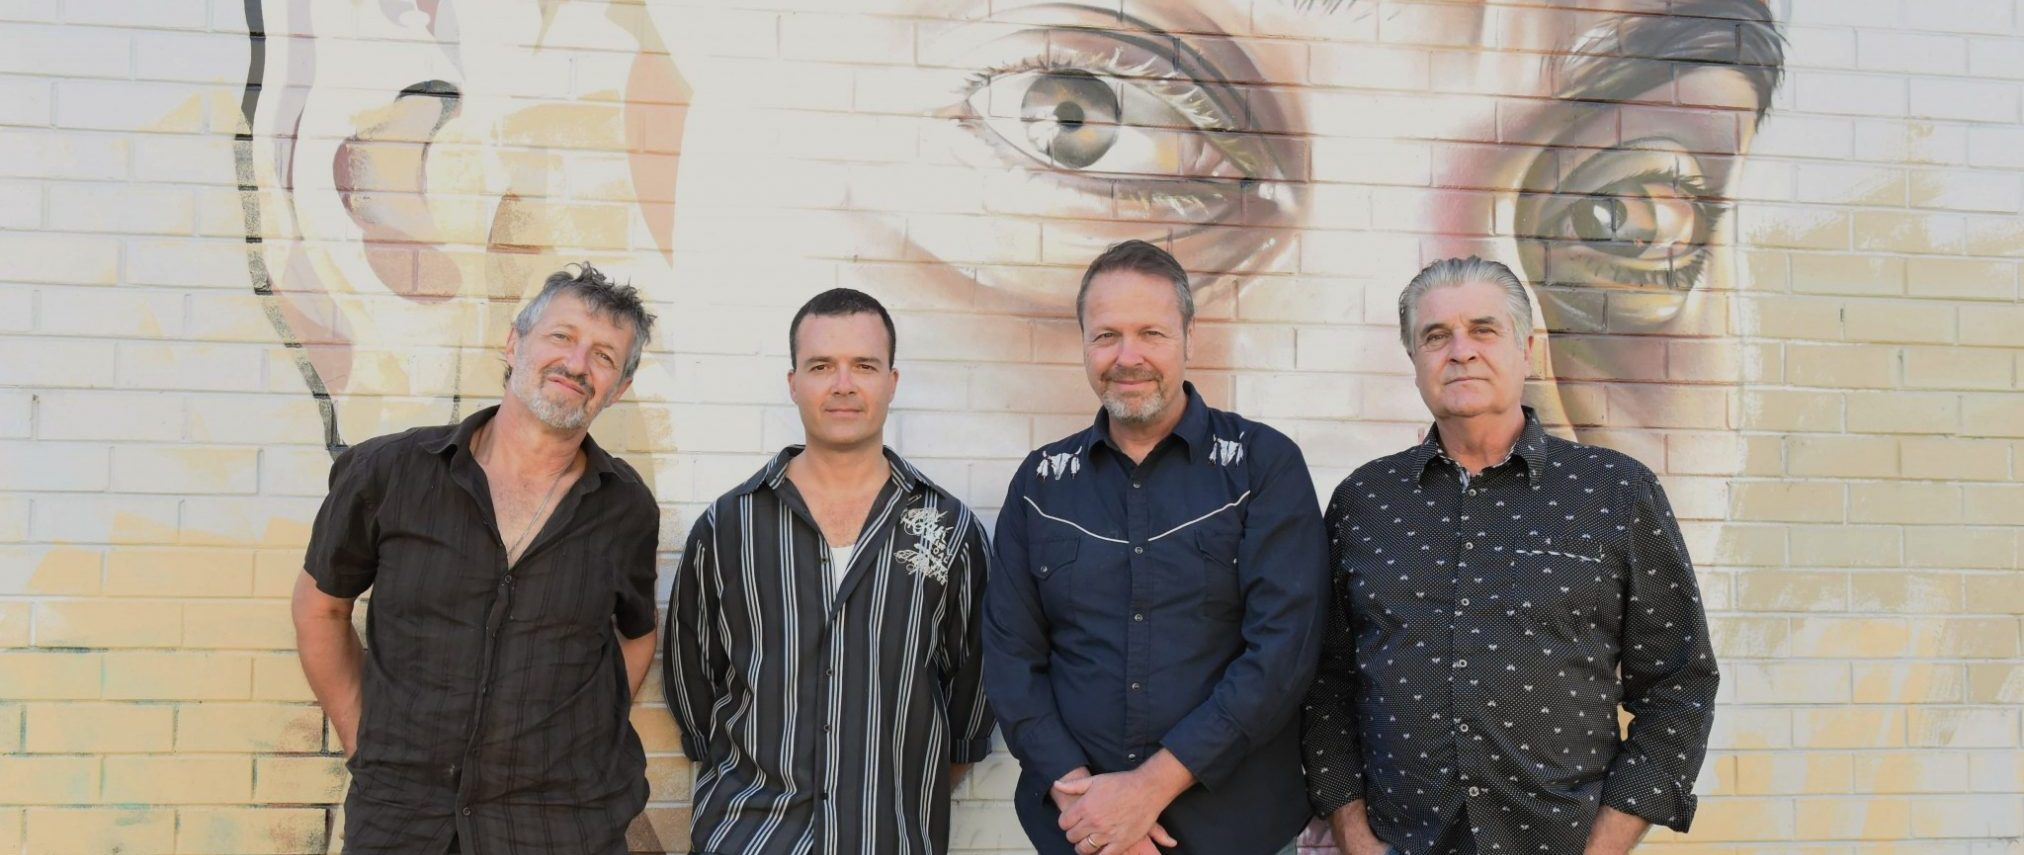 Left to Right: Frank Corby, Eben Hale, Shane Pacey, Alan Britton